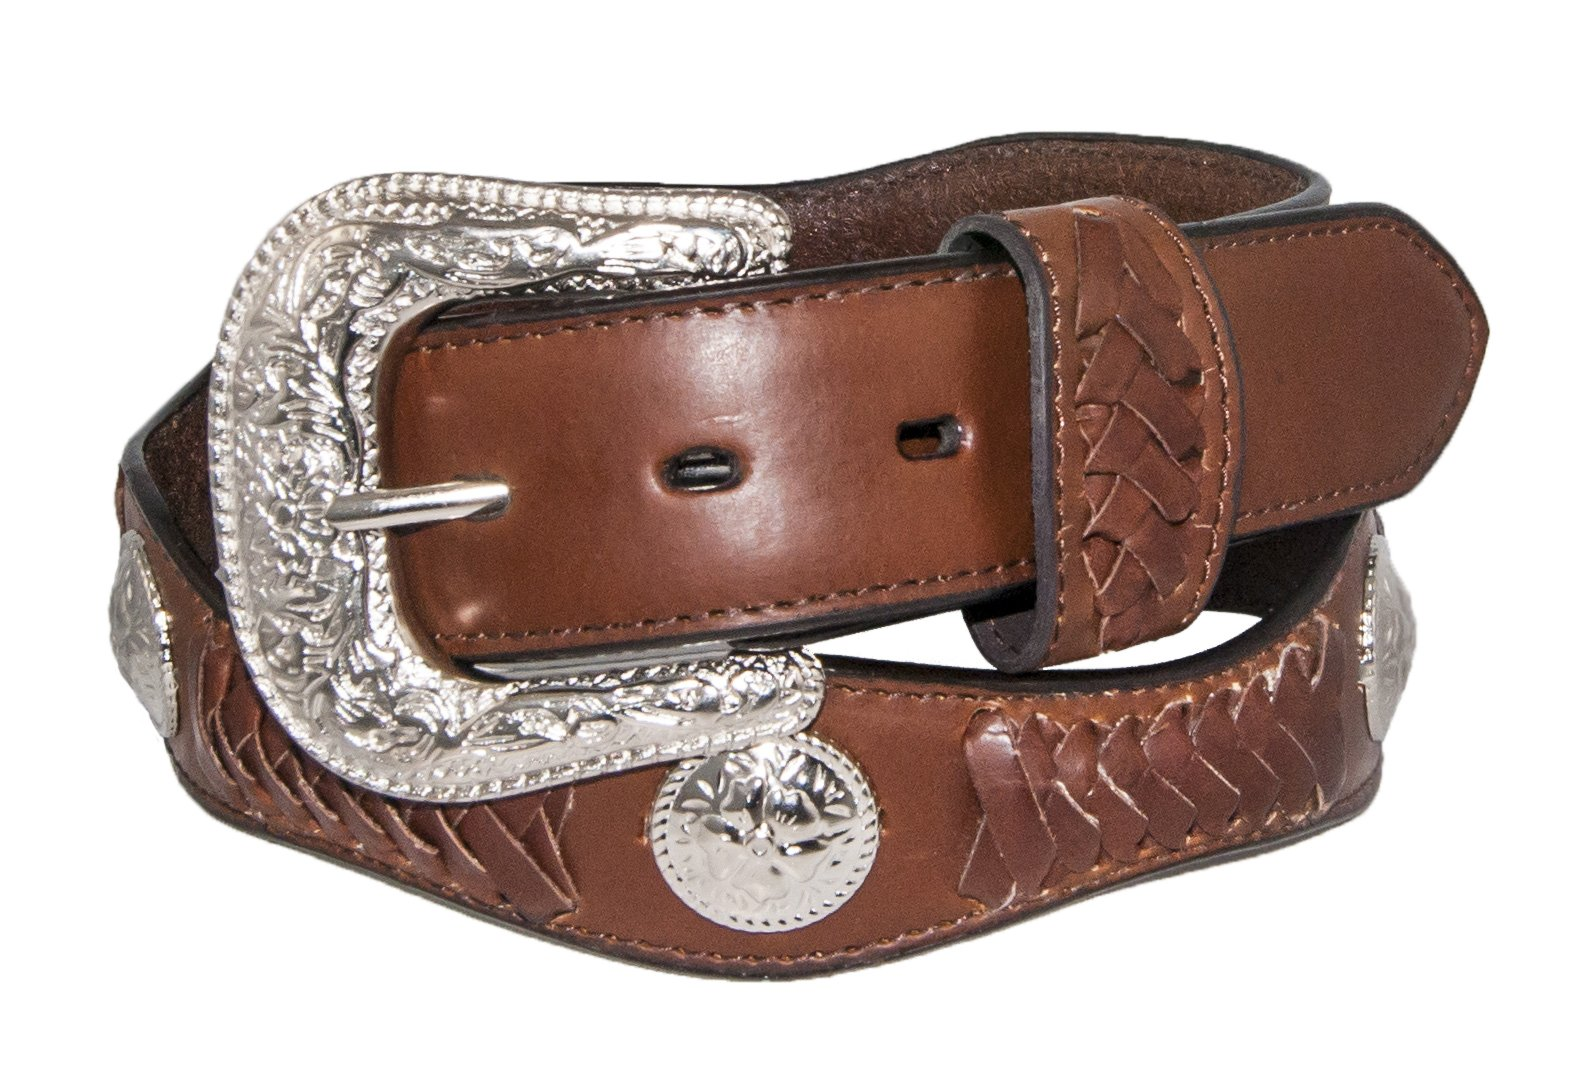 Silver Canyon Men's Leather Scalloped with Lacing and Concho Peanut Brittle Belt